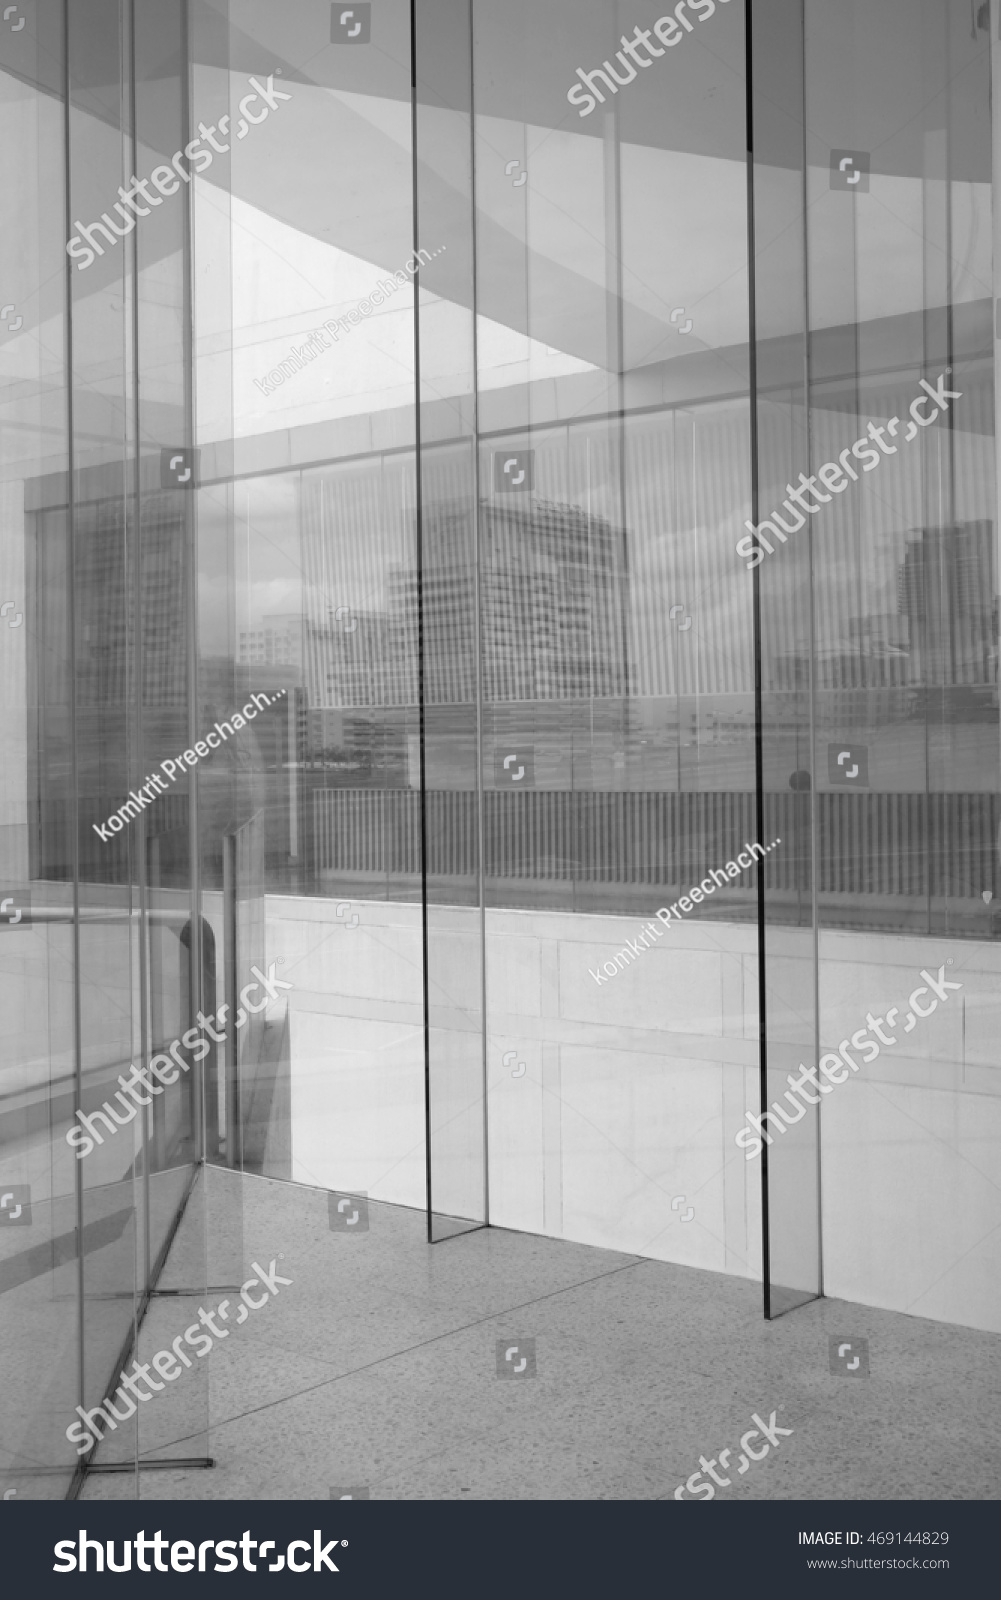 Glass Building Reflection Building Stock Photo 469144829 ...